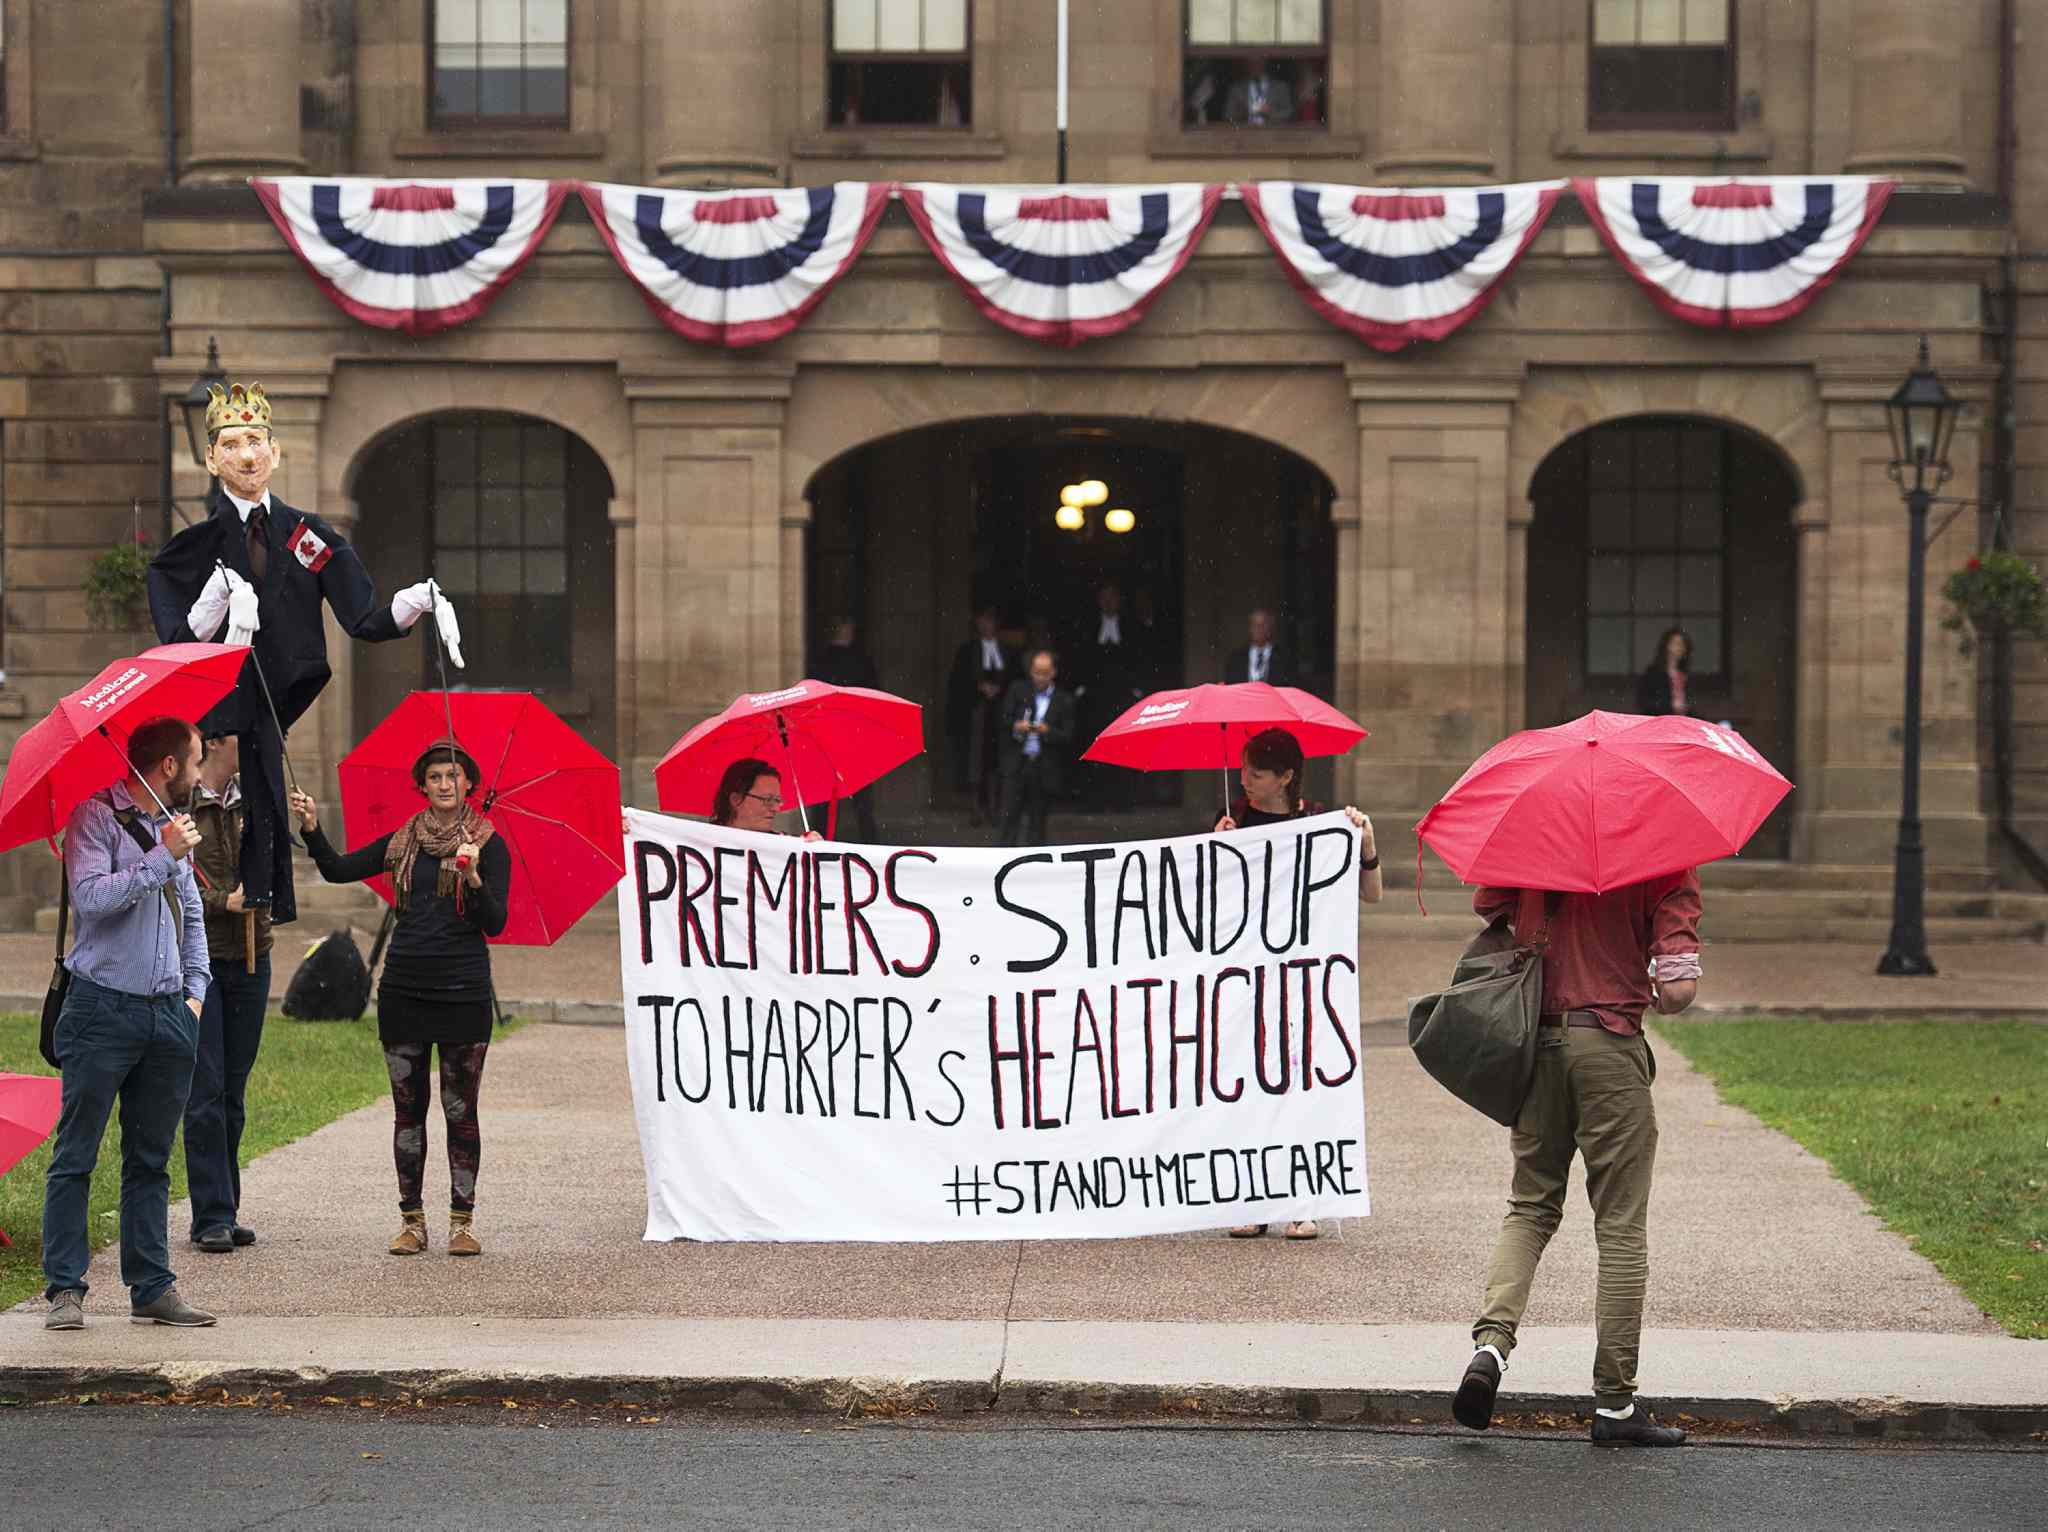 Protesters at a premiers' meeting in Charlottetown in 2014. Prime Minister Stephen Harper has refused to attend first ministers' meetings.